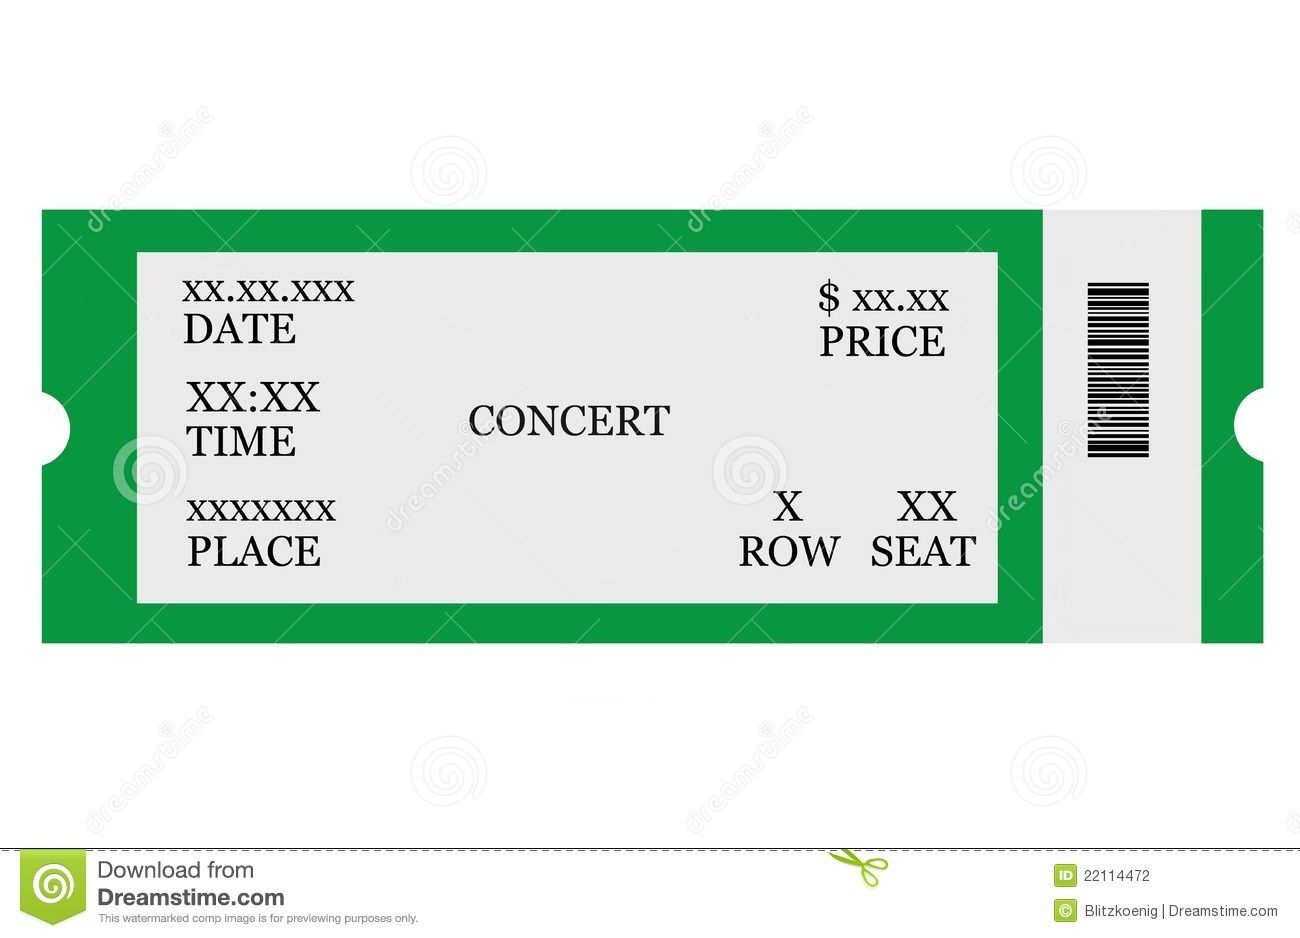 004 Fascinating Free Event Ticket Template Printable Design Full